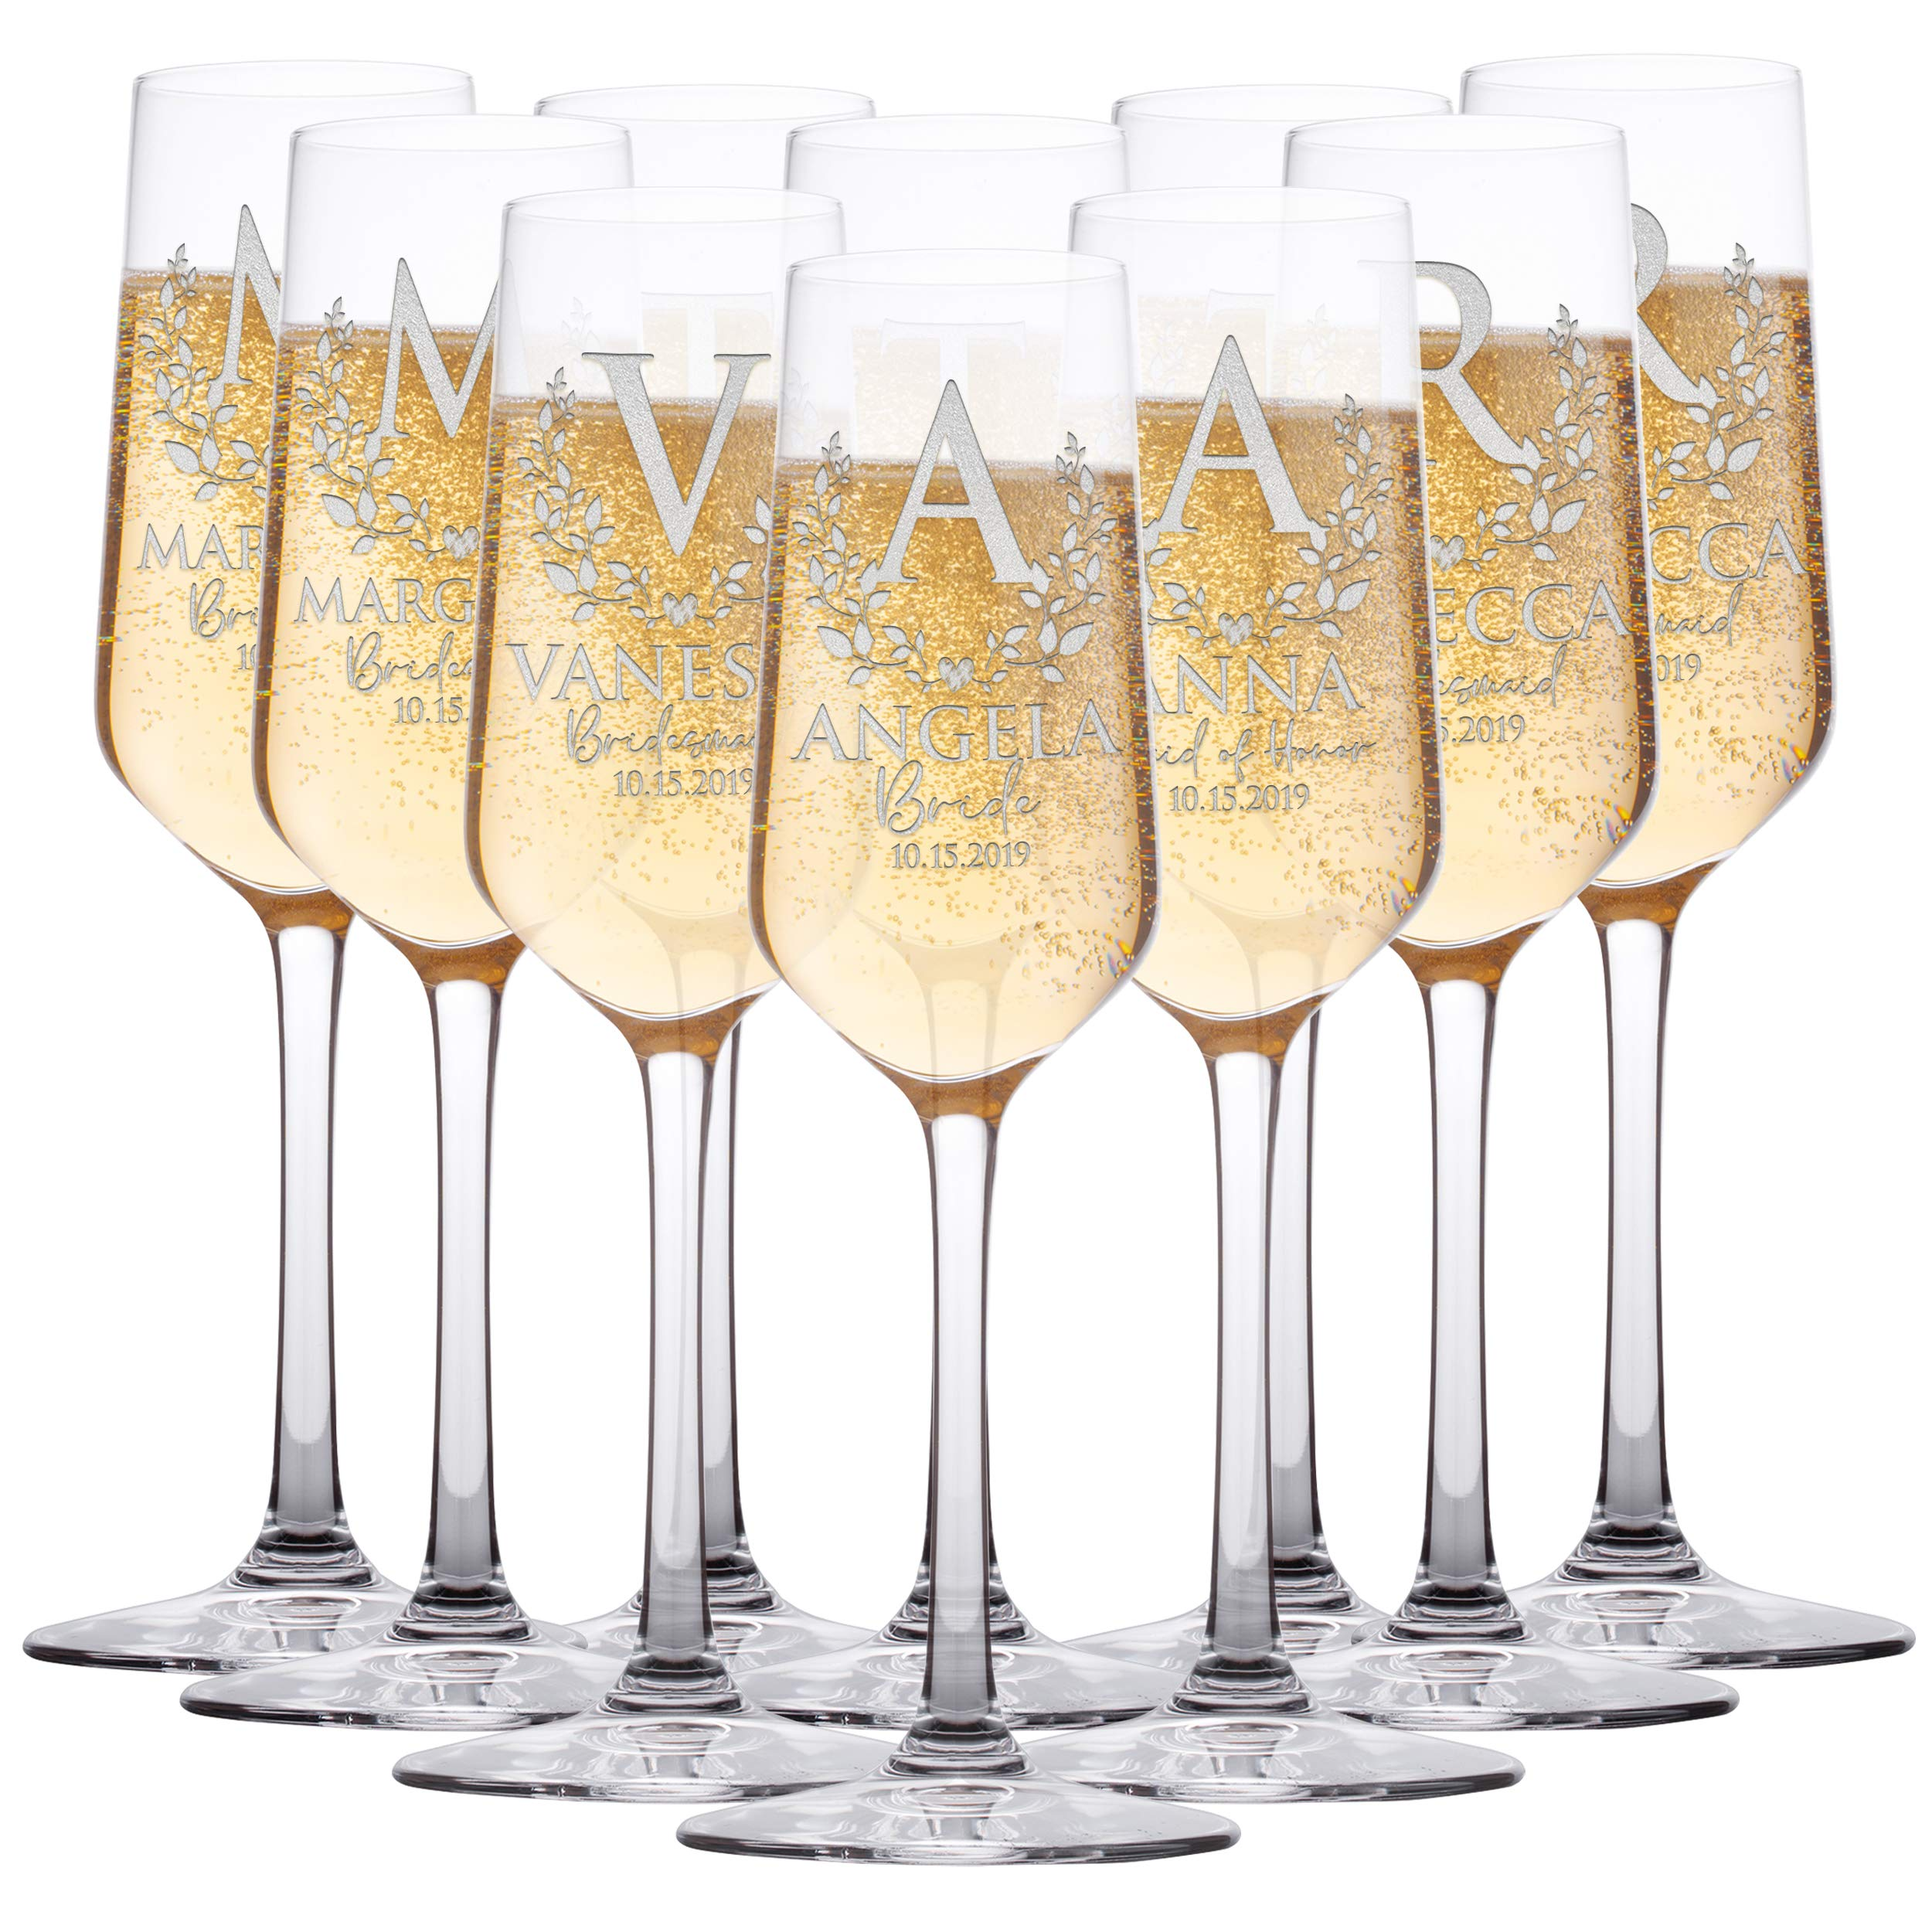 Personalized Bridesmaid Champagne Flutes, Bridal Party, Customized Gifts for Bridesmaids, Maid of Honor w Gift Box Option | 10 Piece